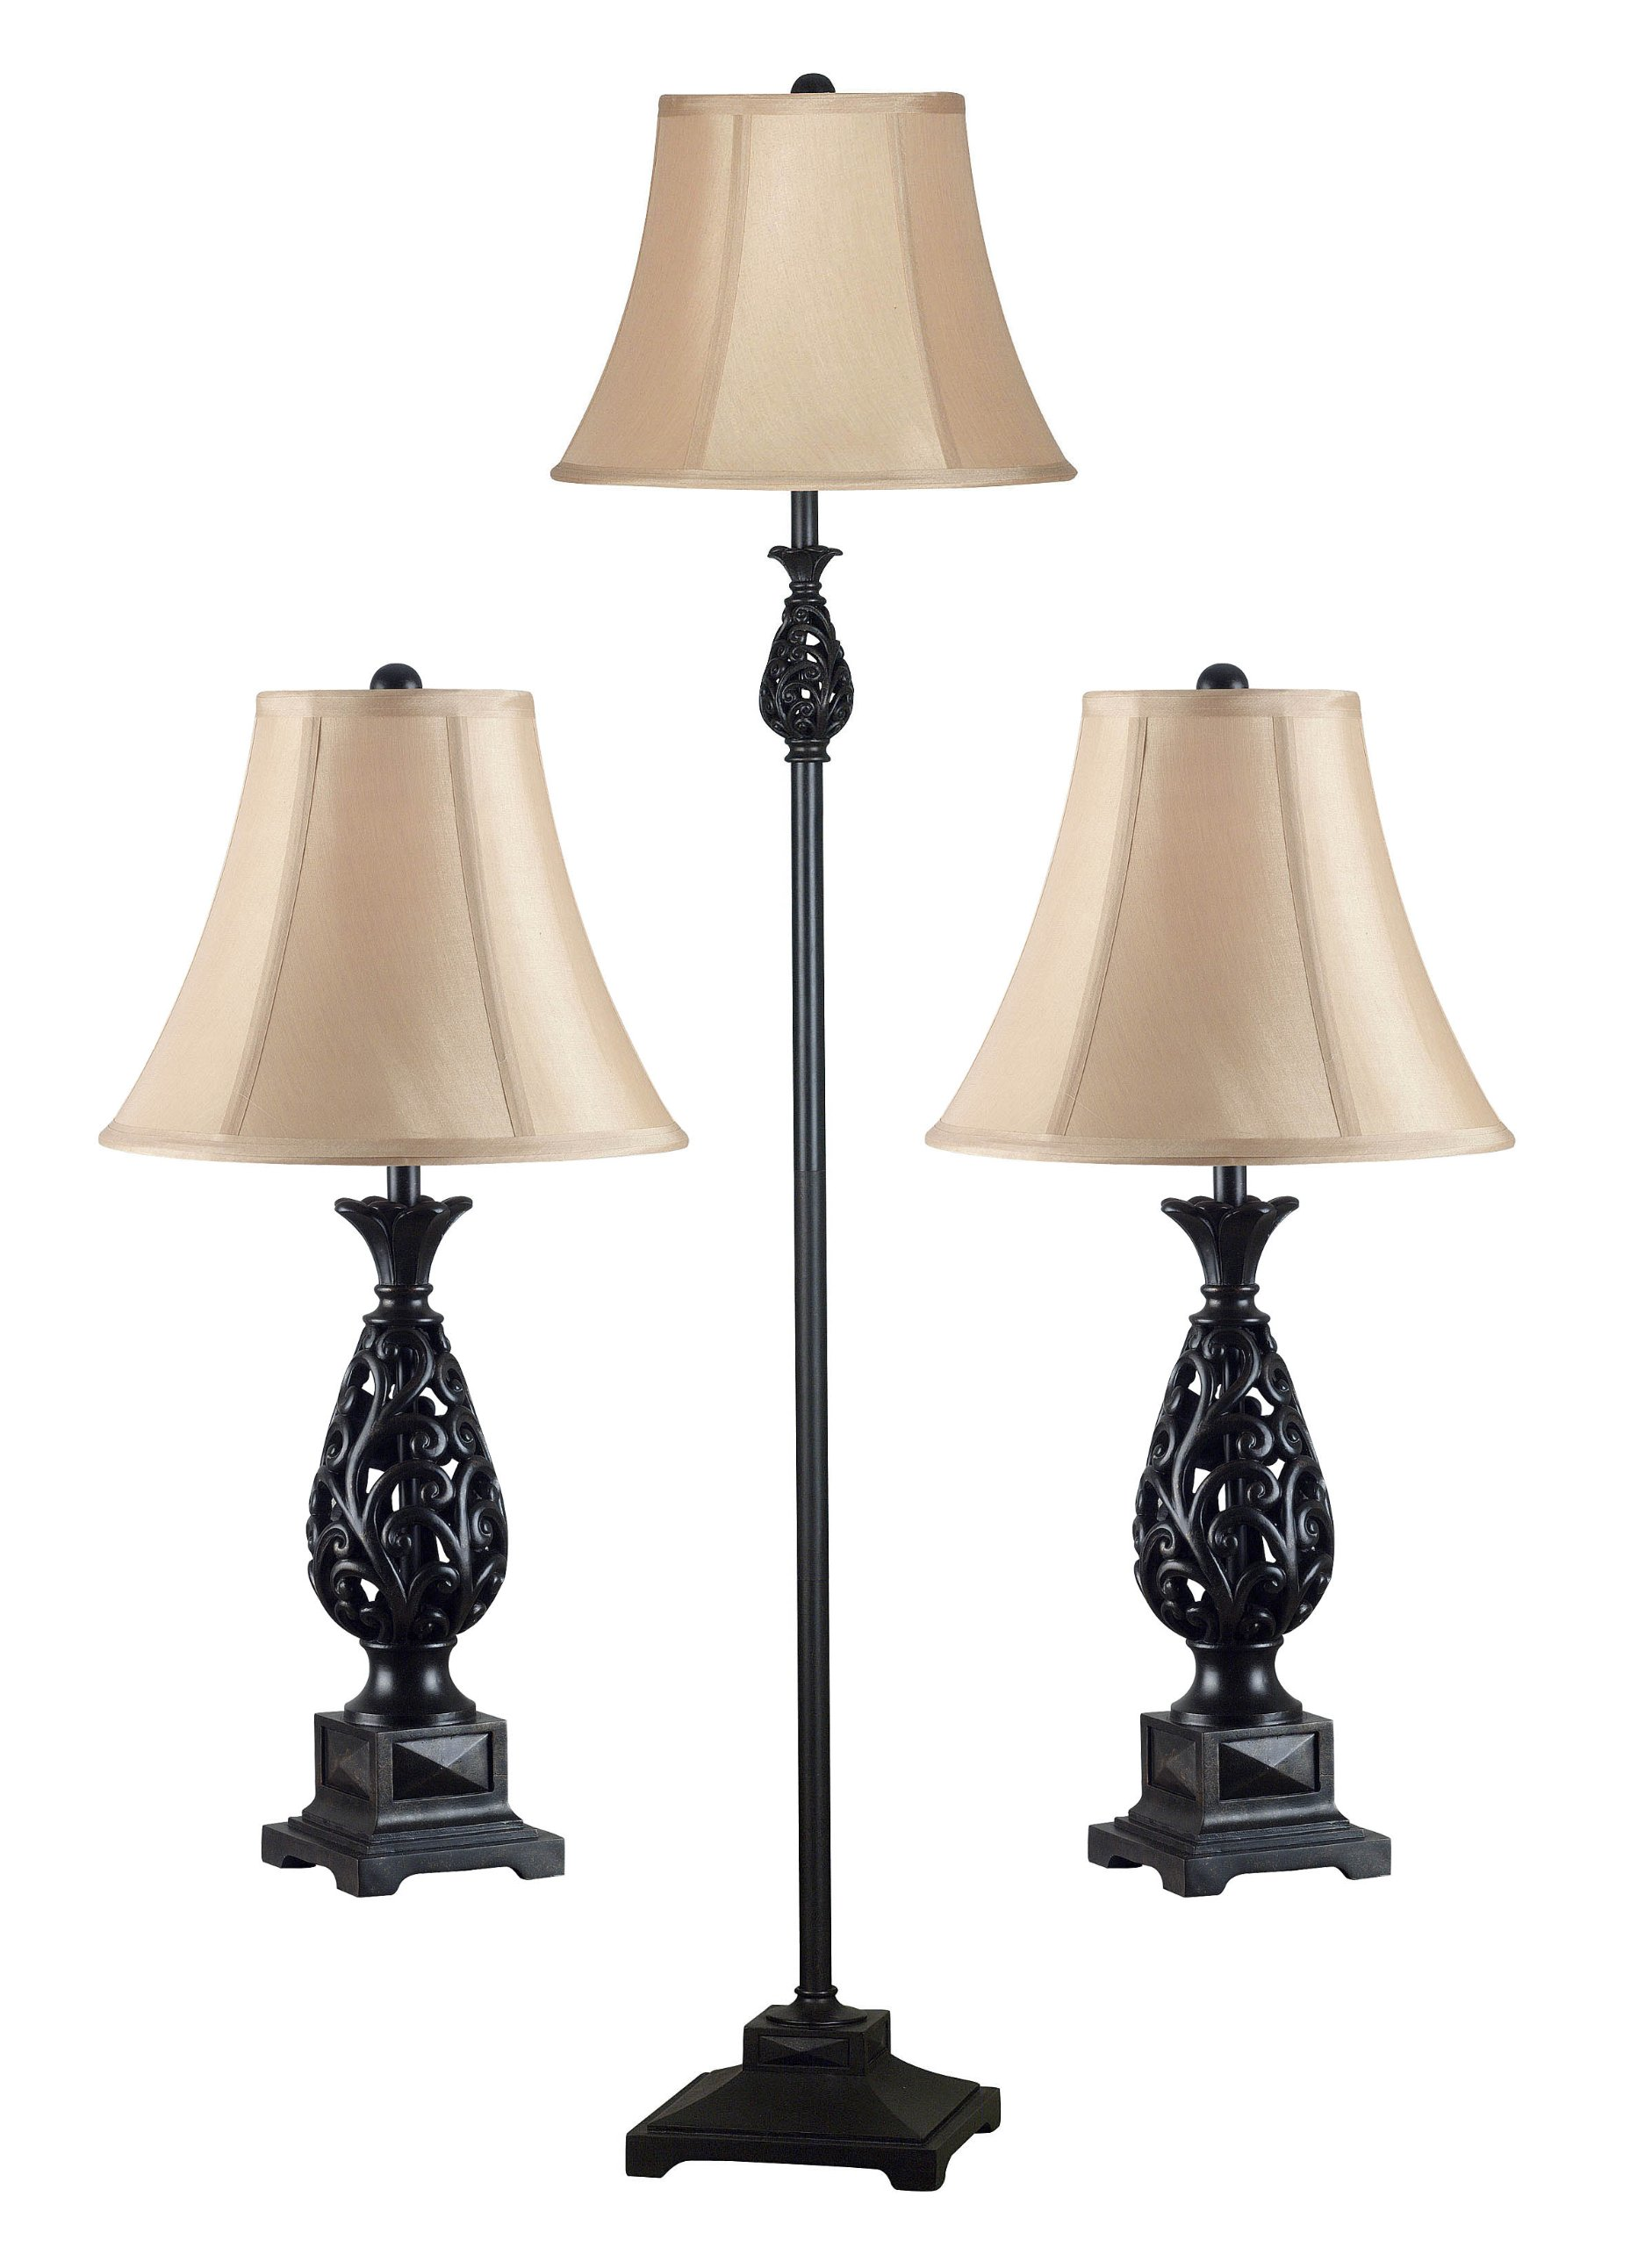 Kenroy Home 21017GFBR Prescott Table and Floor Lamp, 3 Pack, Golden Flecked Bronze